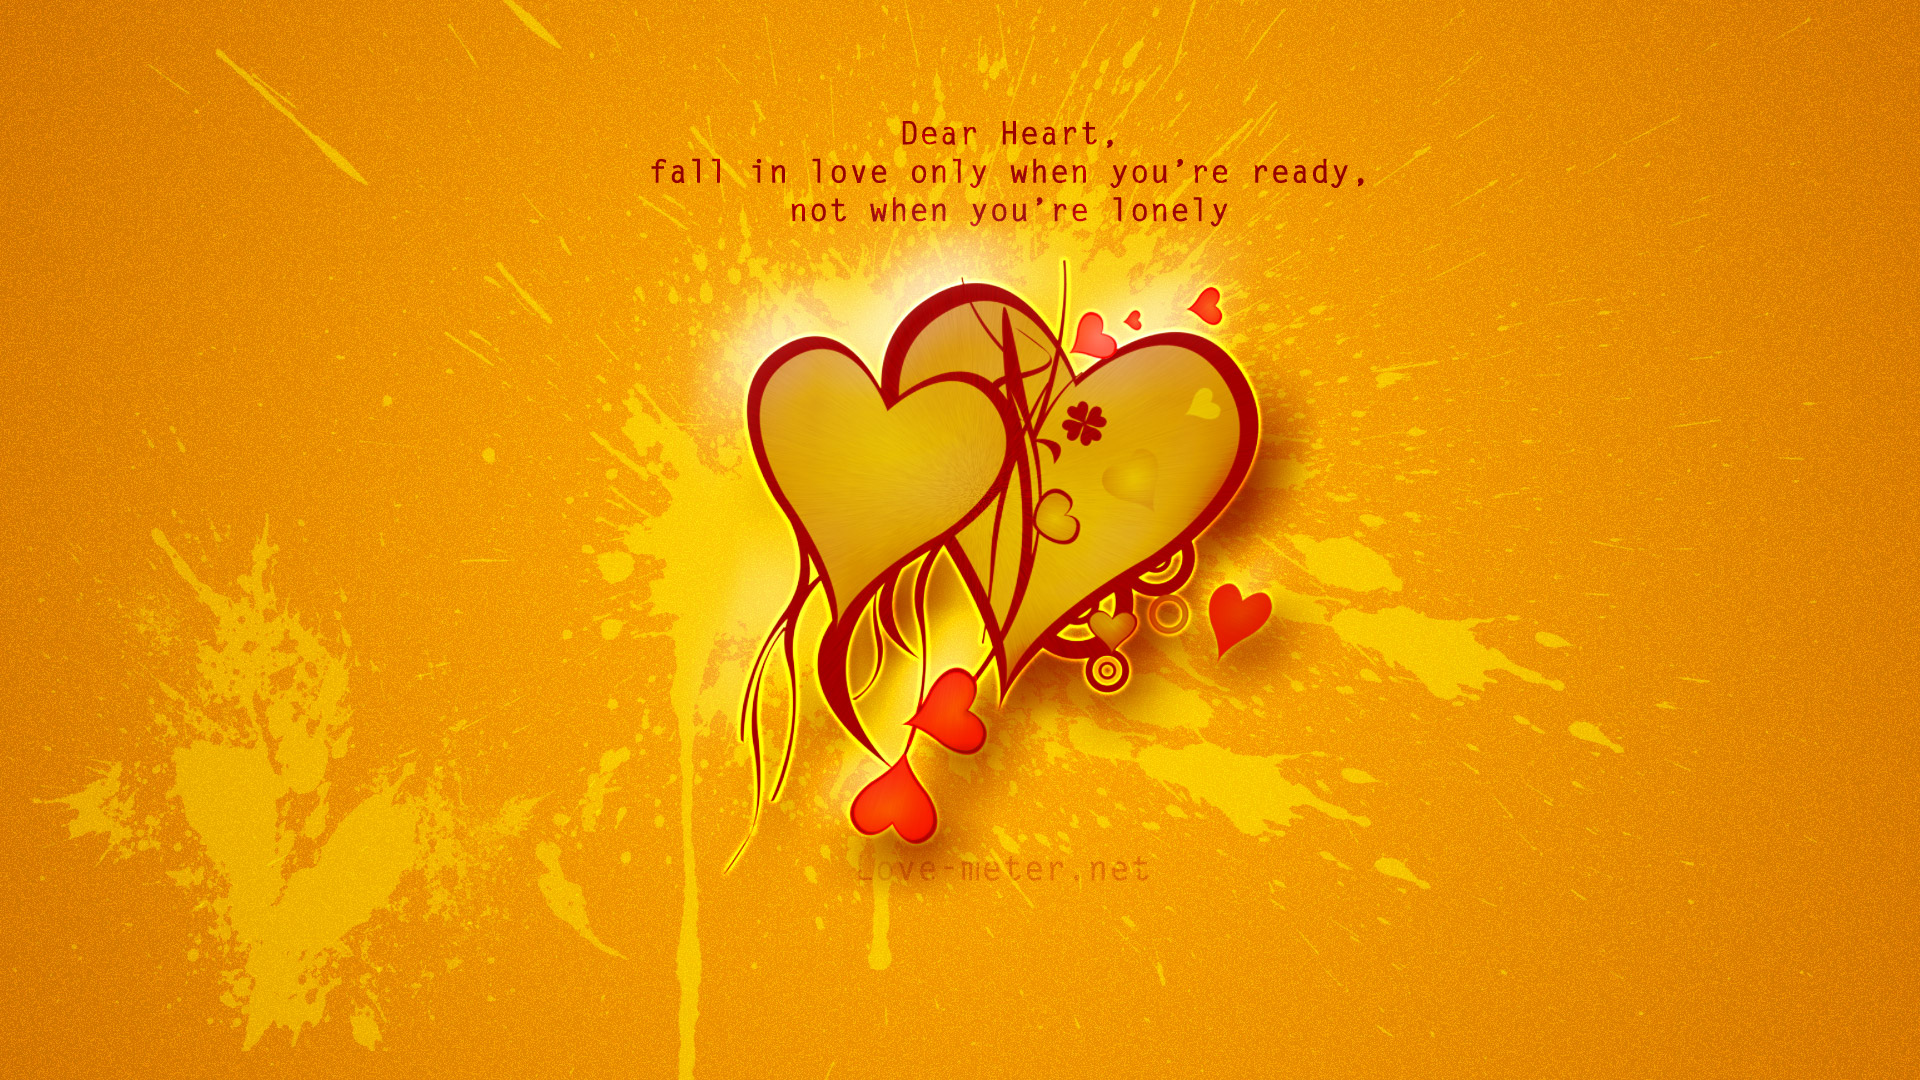 Fall Wallpaper Cars Fall In Love Wallpaper Quotes 4260 Wallpaper Walldiskpaper